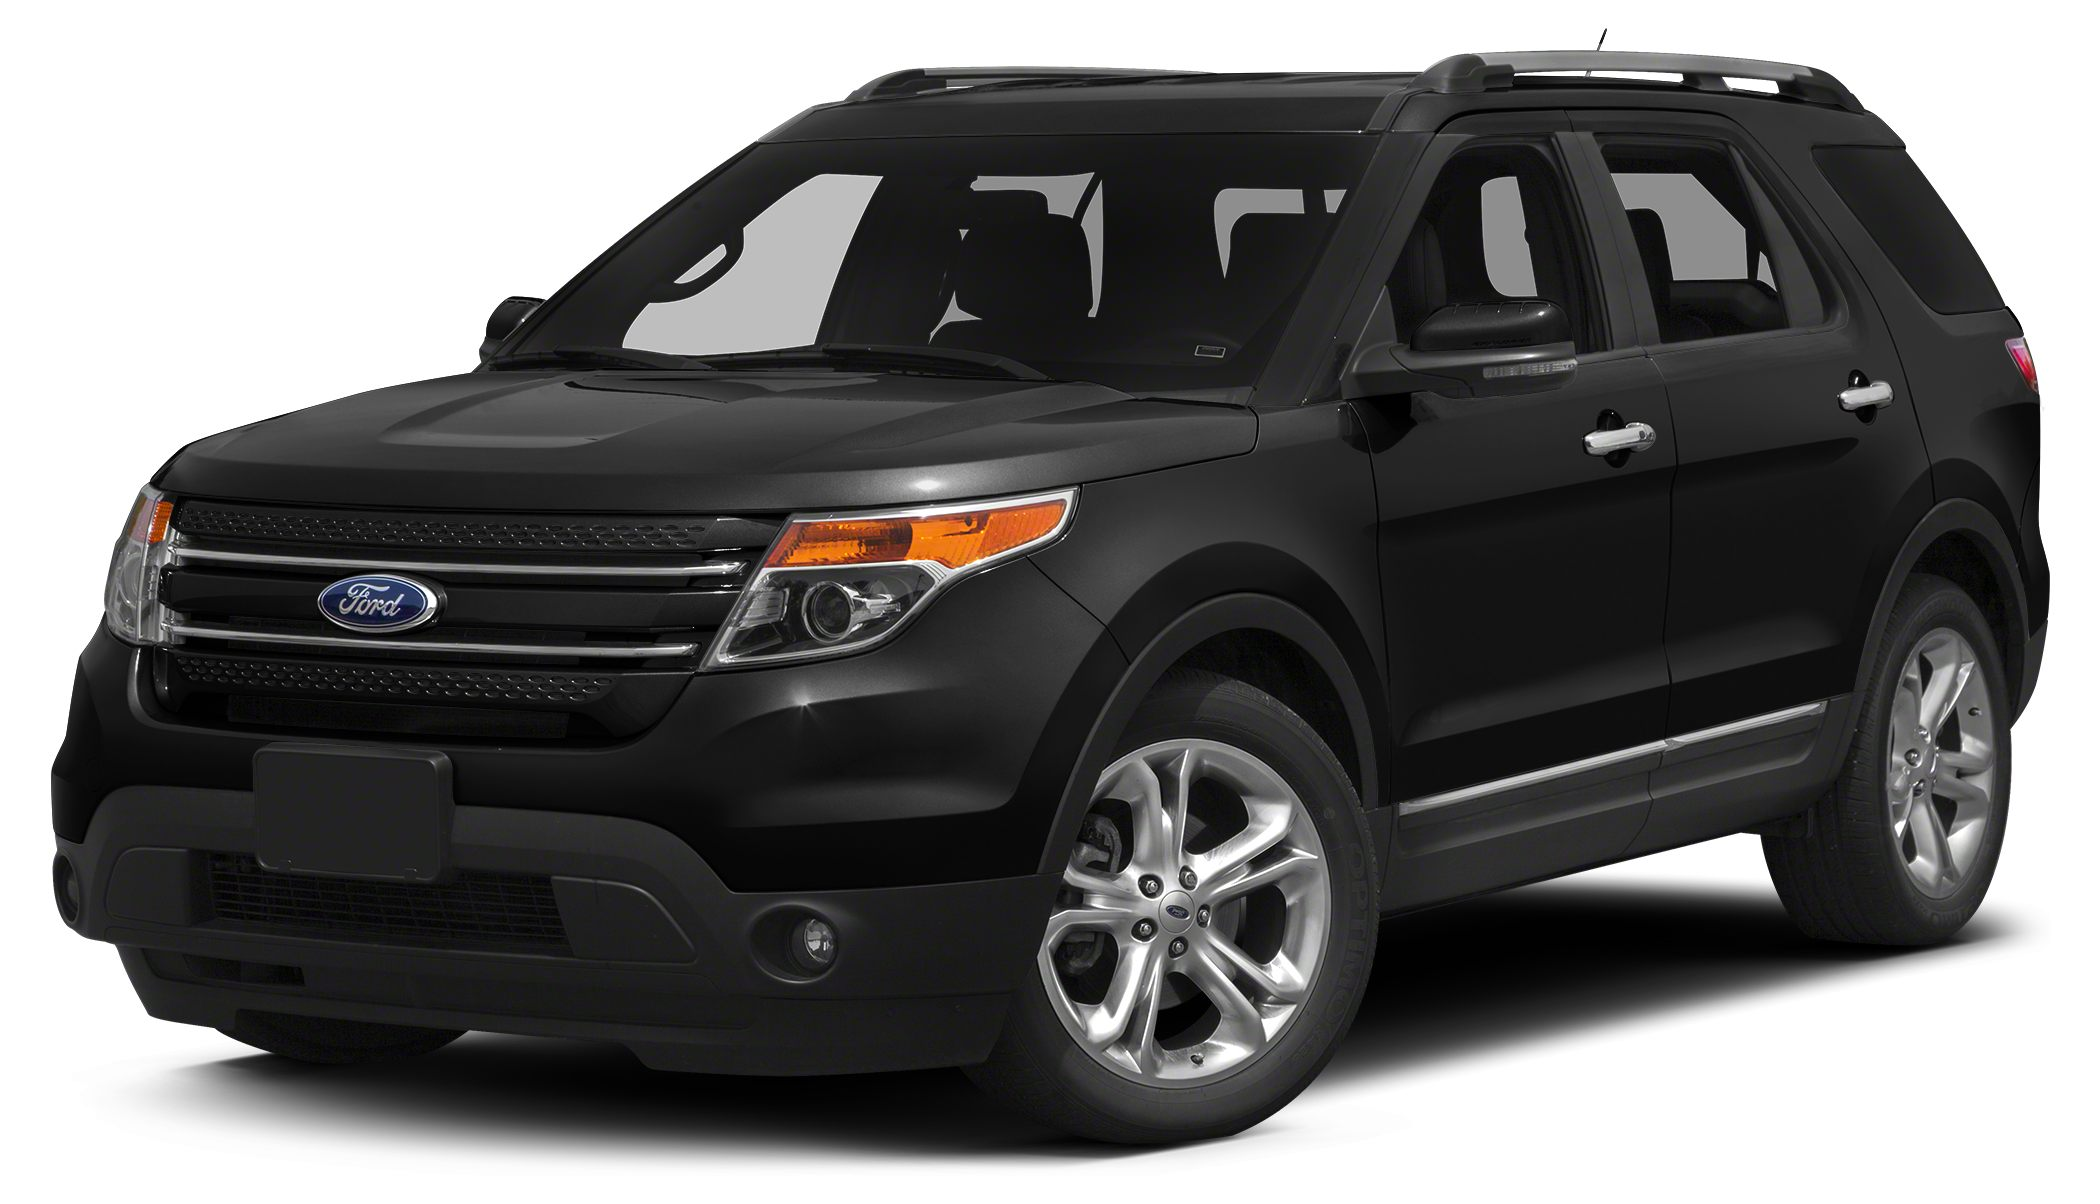 2015 Ford Explorer Limited The all new bold and dashing 2015 Explorer is your familys very own 7